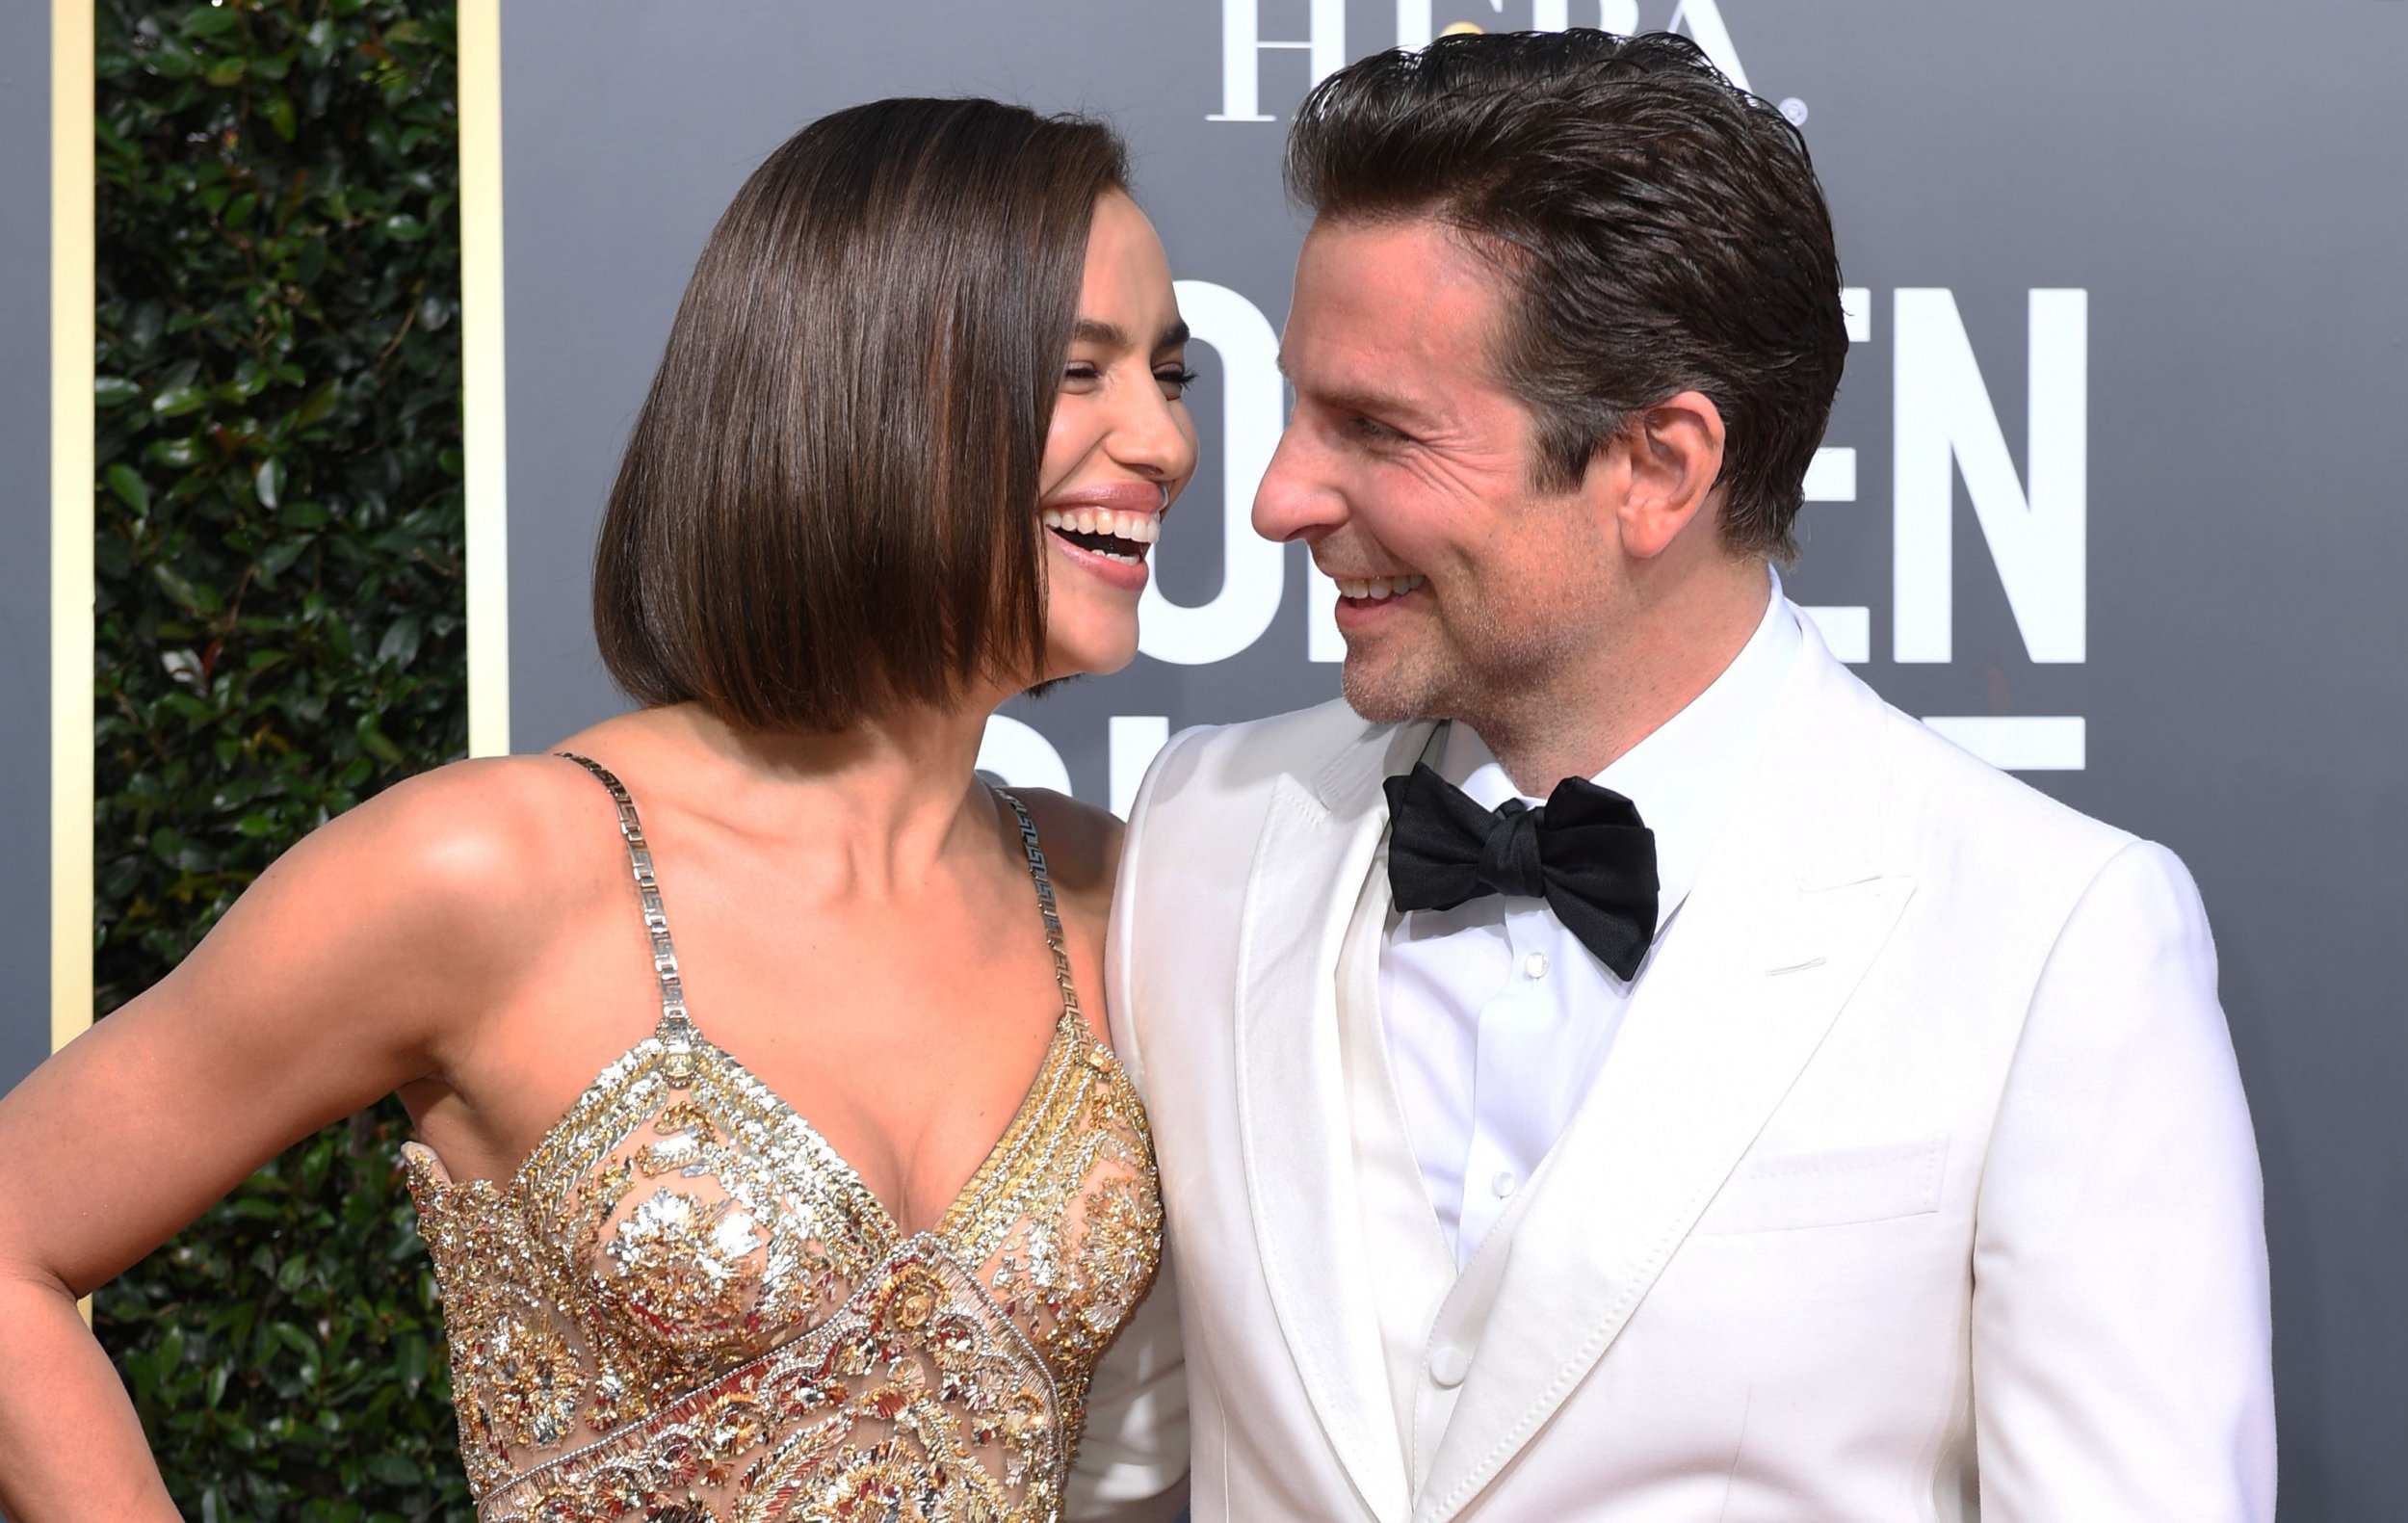 How long has Bradley Cooper been dating girlfriend Irina Shayk and do they have any children?